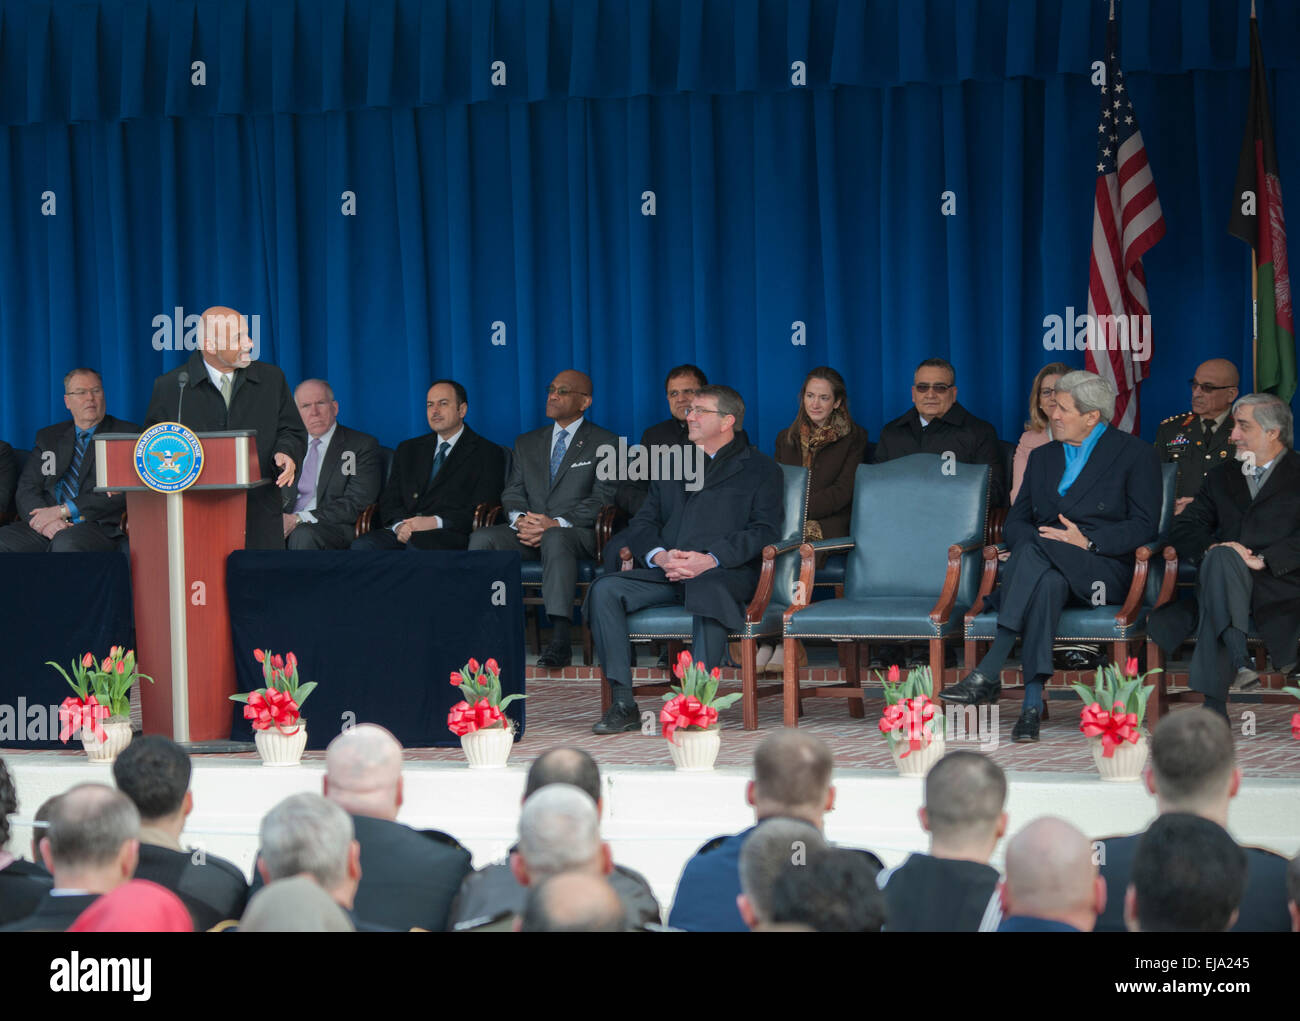 Washington, DC, USA. 23rd Mar, 2015. Afghan President Ashraf Ghani (L) speaks during an event to thank service members - Stock Image